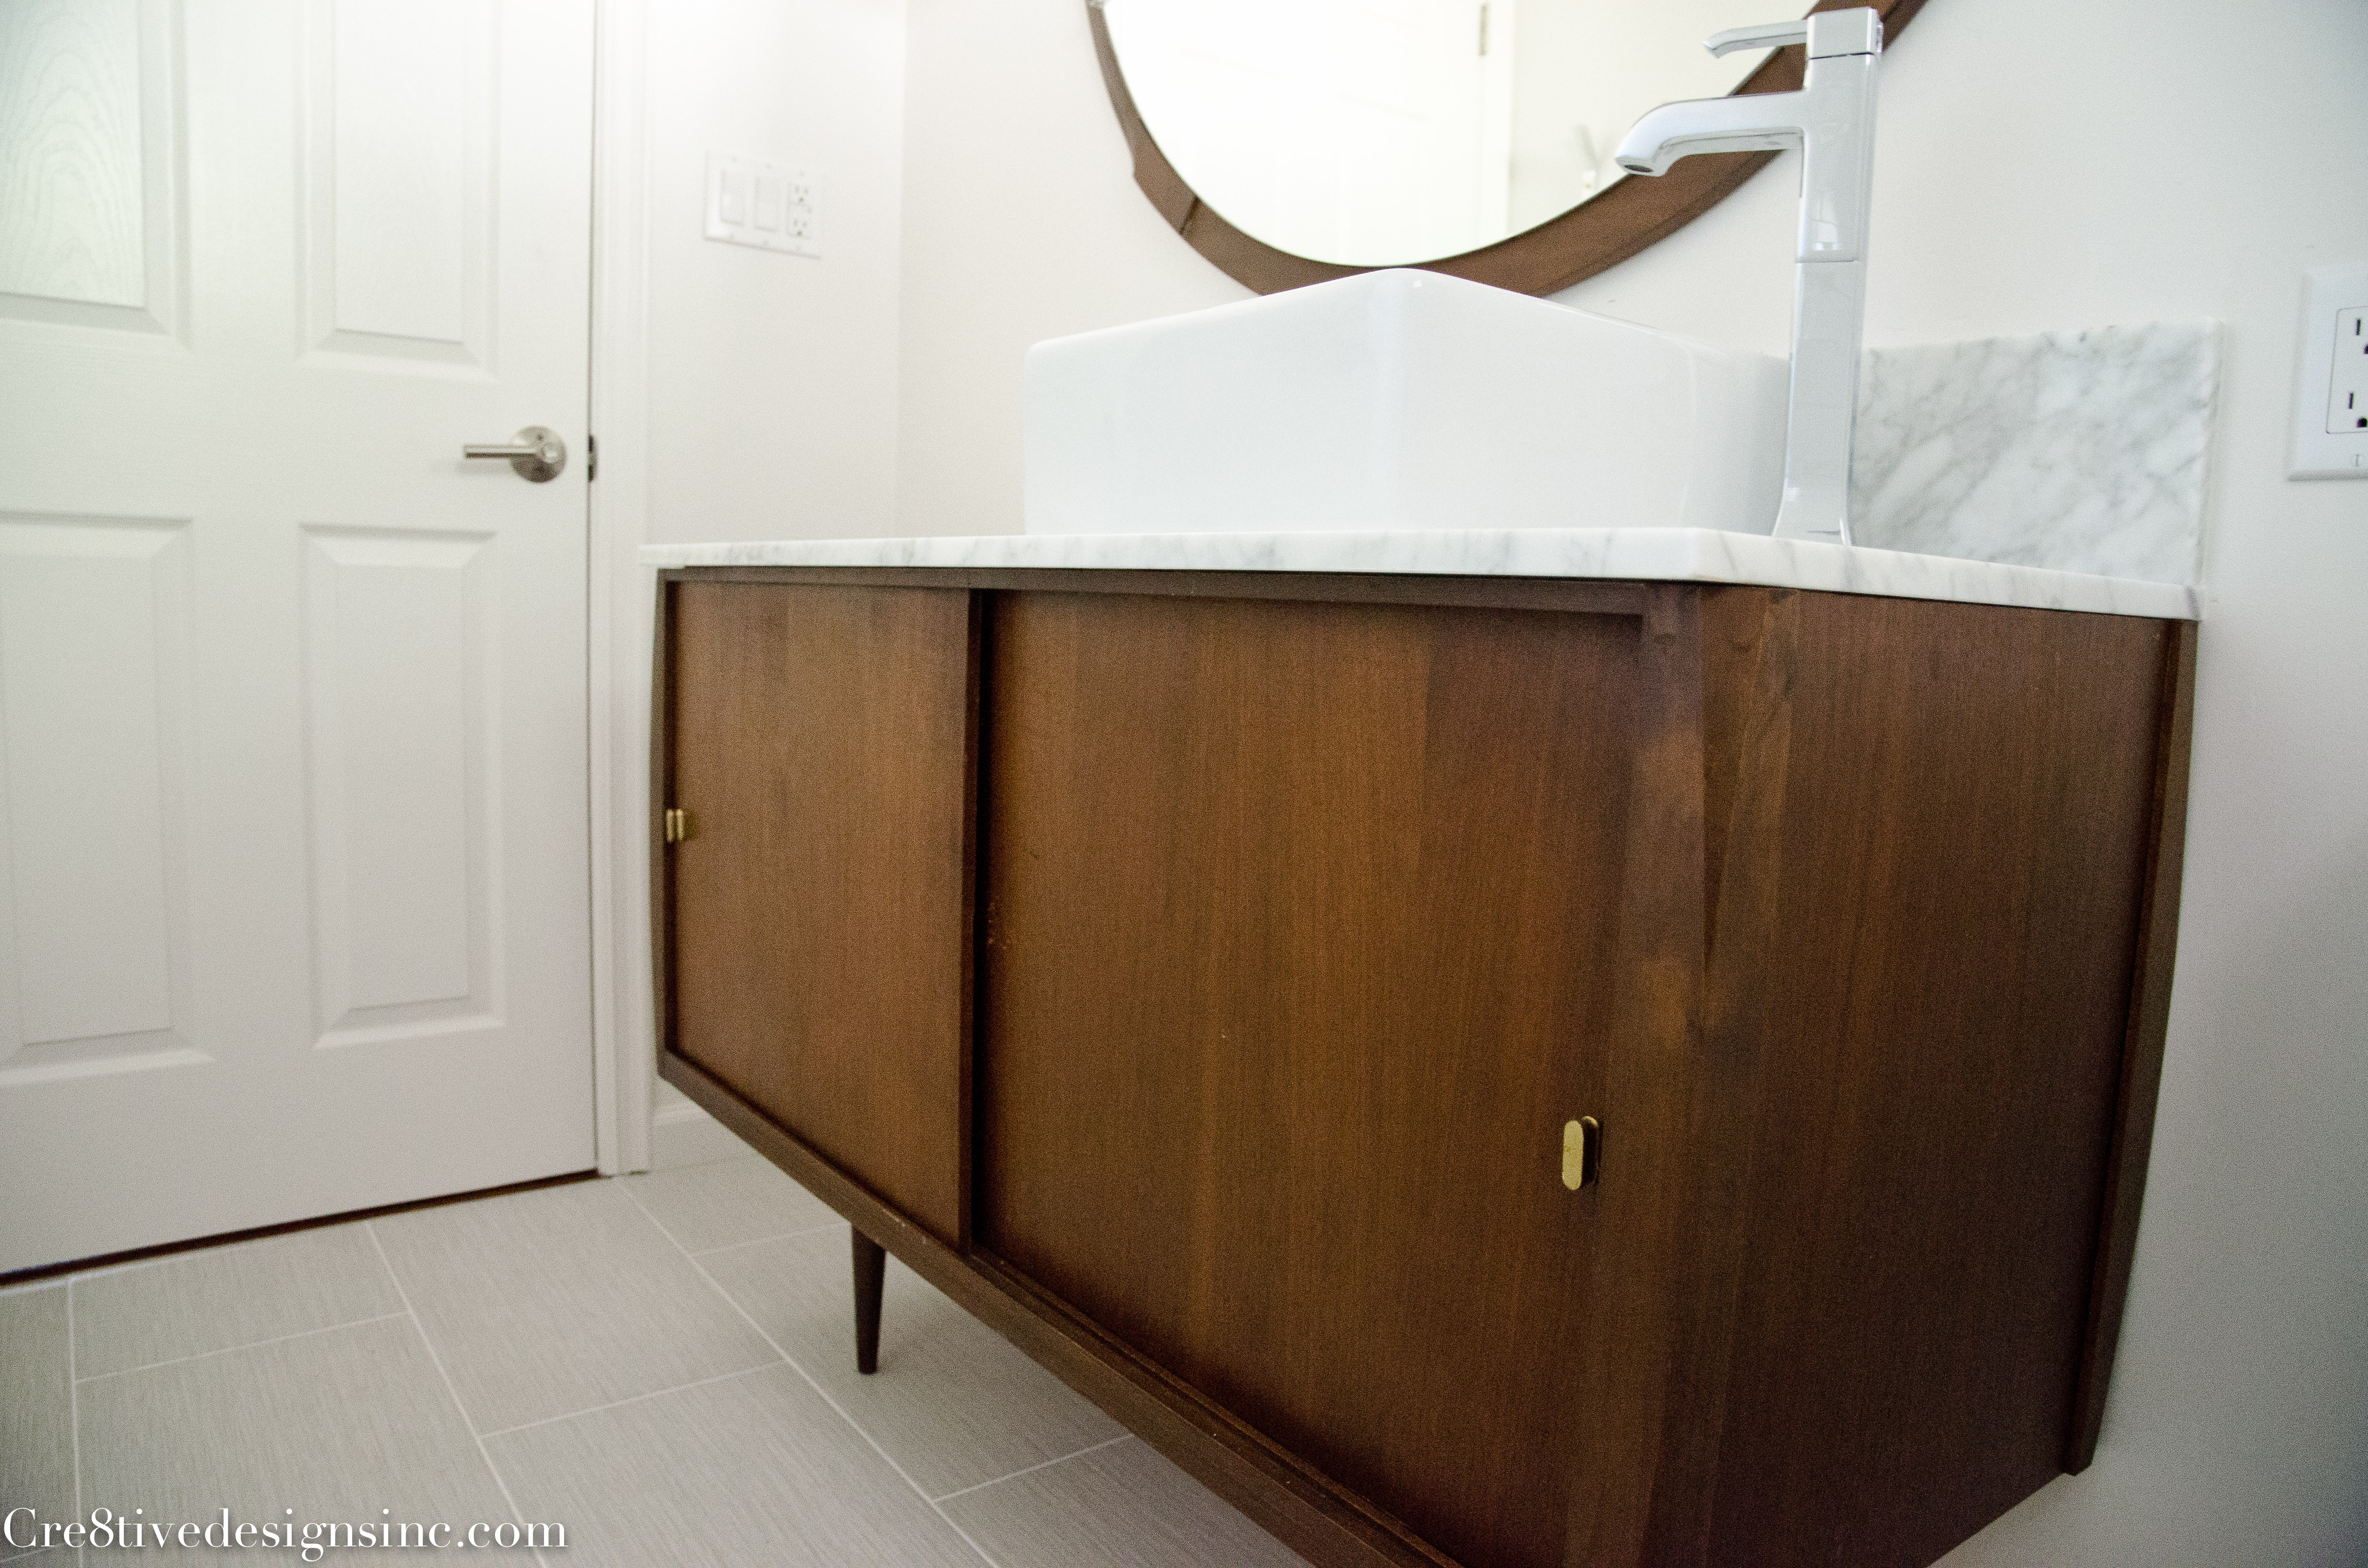 Best ideas about Mid Century Bathroom Vanity . Save or Pin Mid Century Modern Bathroom Cre8tive Designs Inc Now.